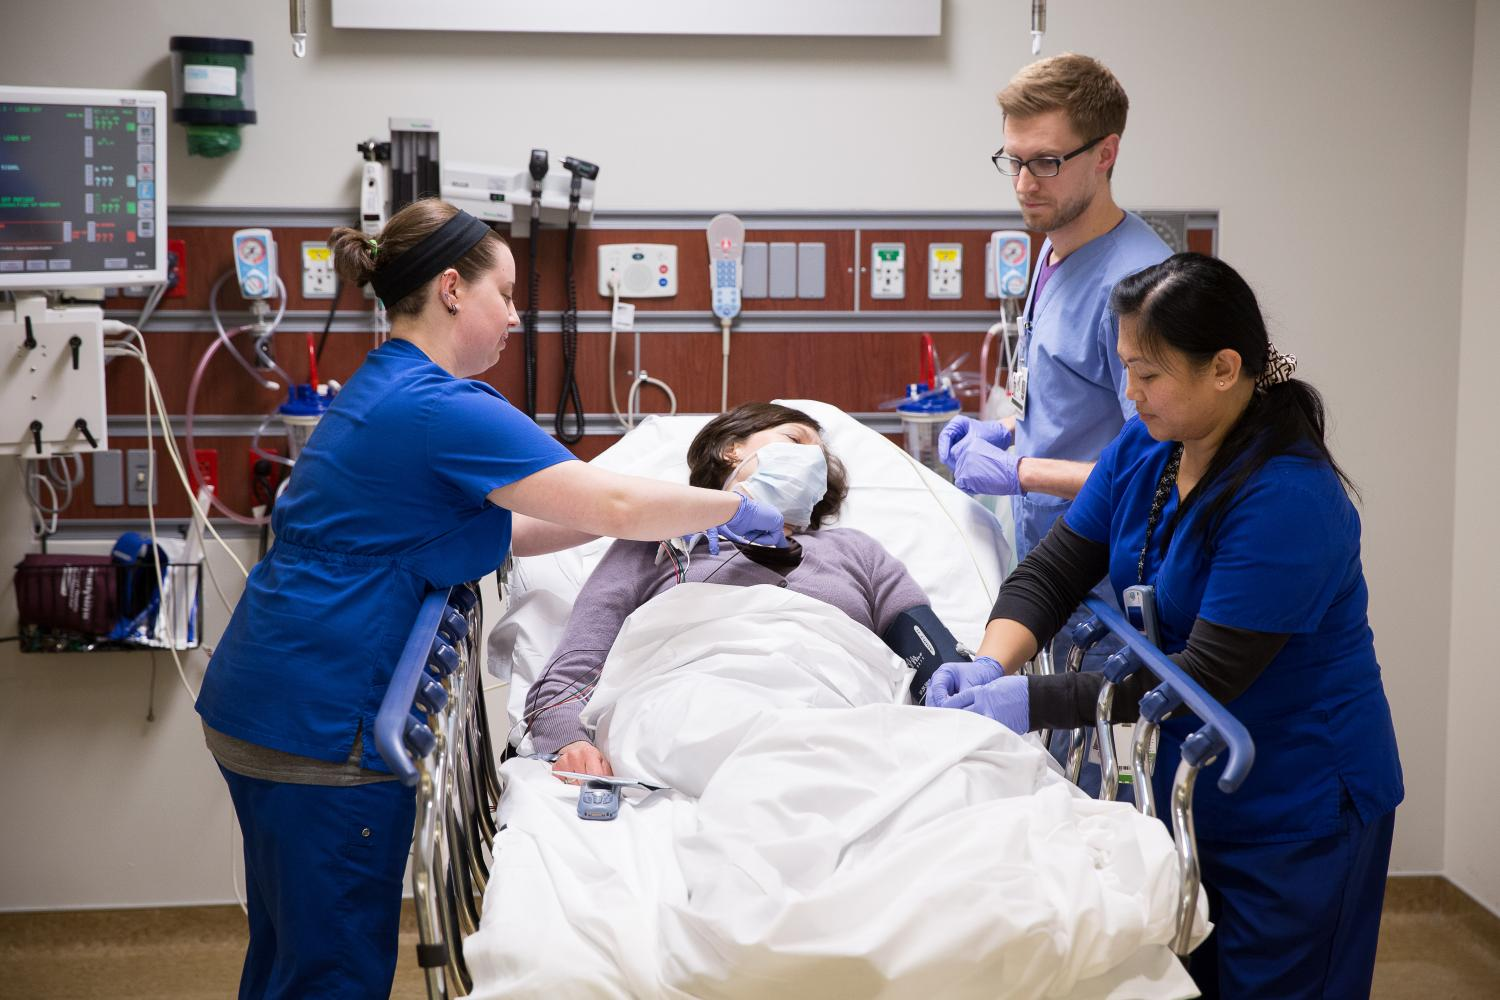 new study examines moral distress in emergency nurses